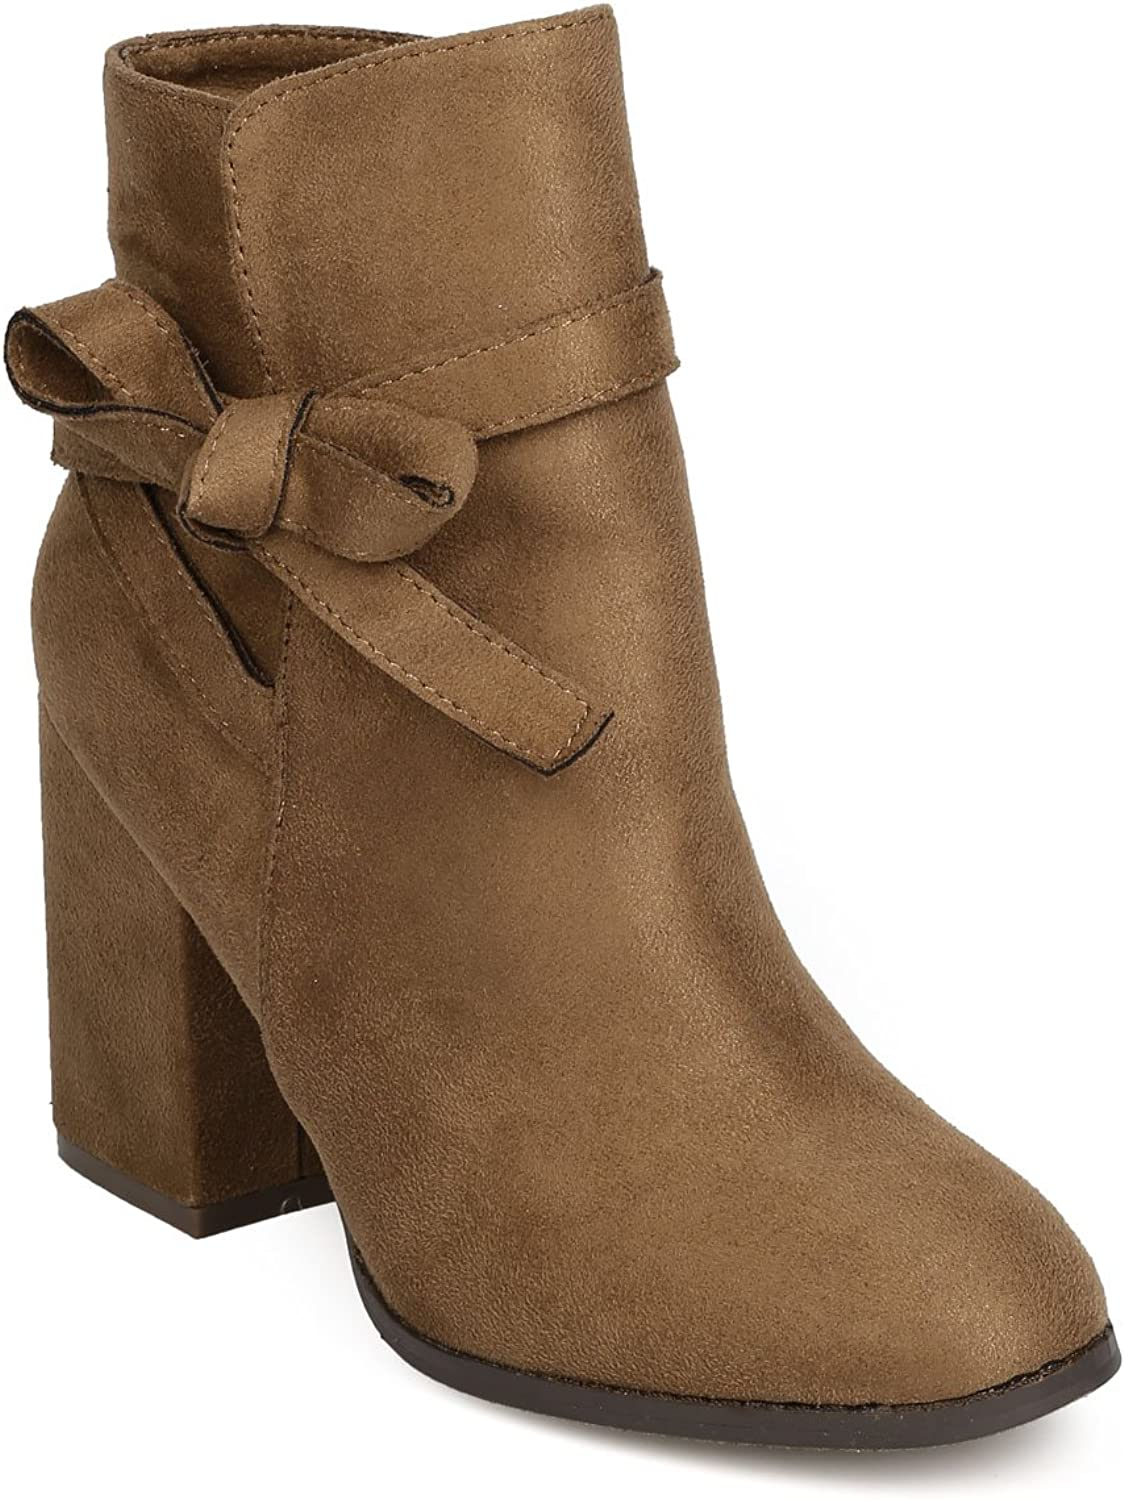 Alrisco FE13 Women Faux Suede Bow Tie Chunky Heel Ankle Boot - Taupe